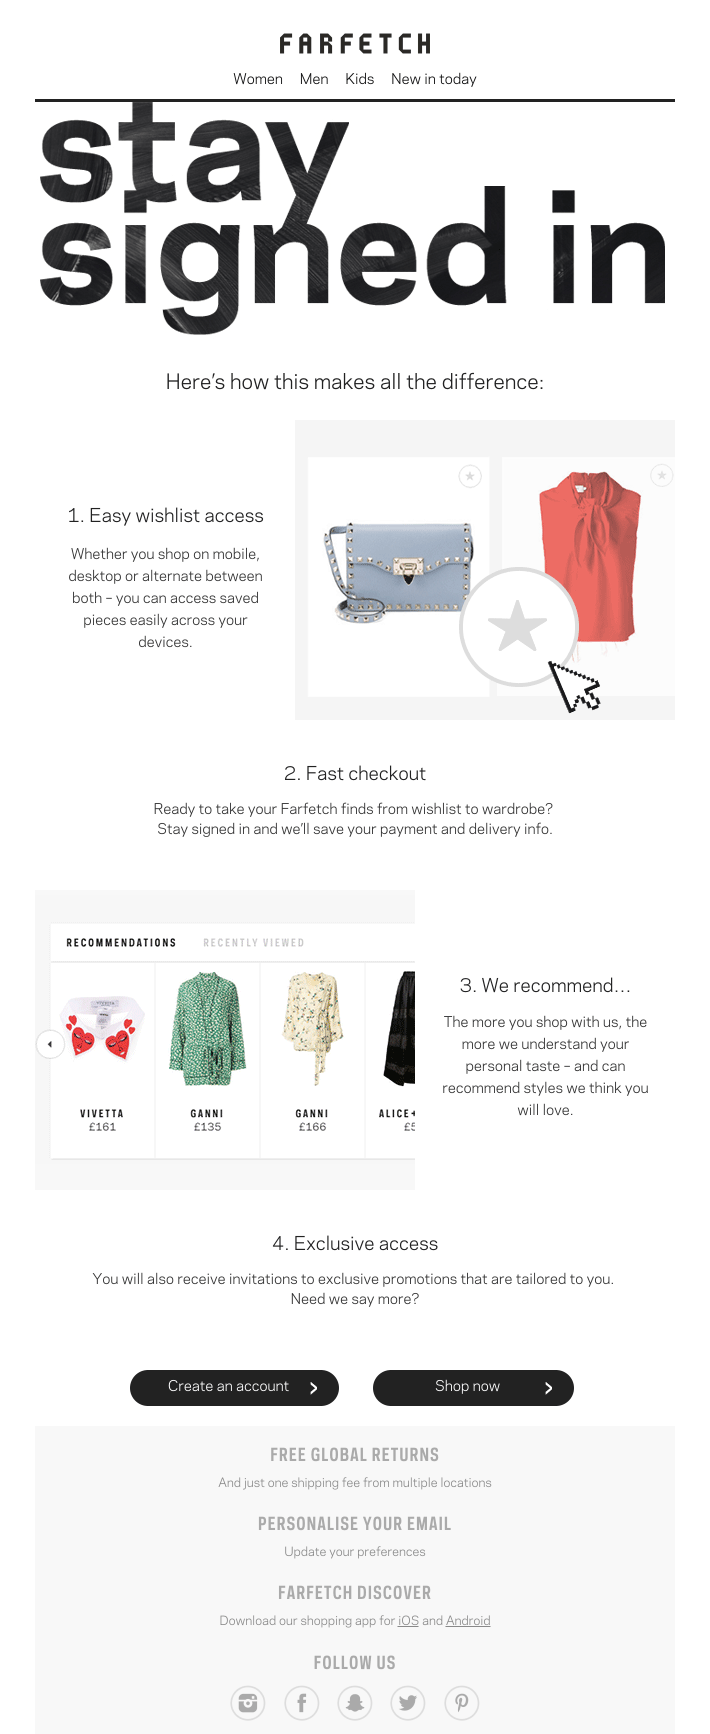 soundest-ecommerce-newsletter-examples2